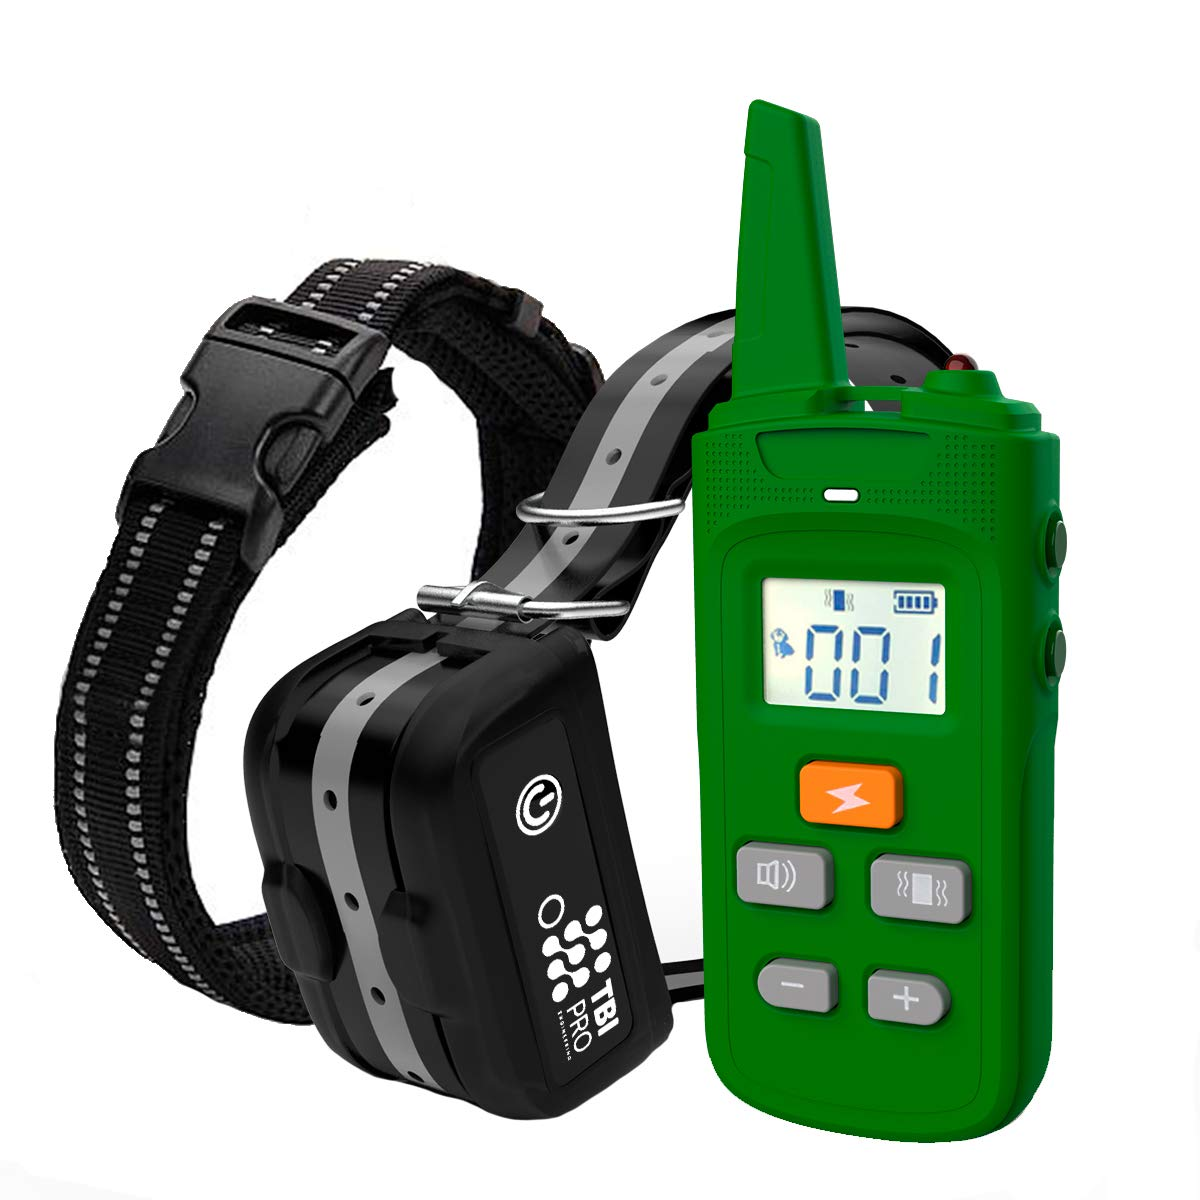 TBI Pro Dog Training Collar with Remote, Long Range 2000 ft, Rechargeable IPX7 Waterproof, for Small, Medium, Large Dogs, All Breeds